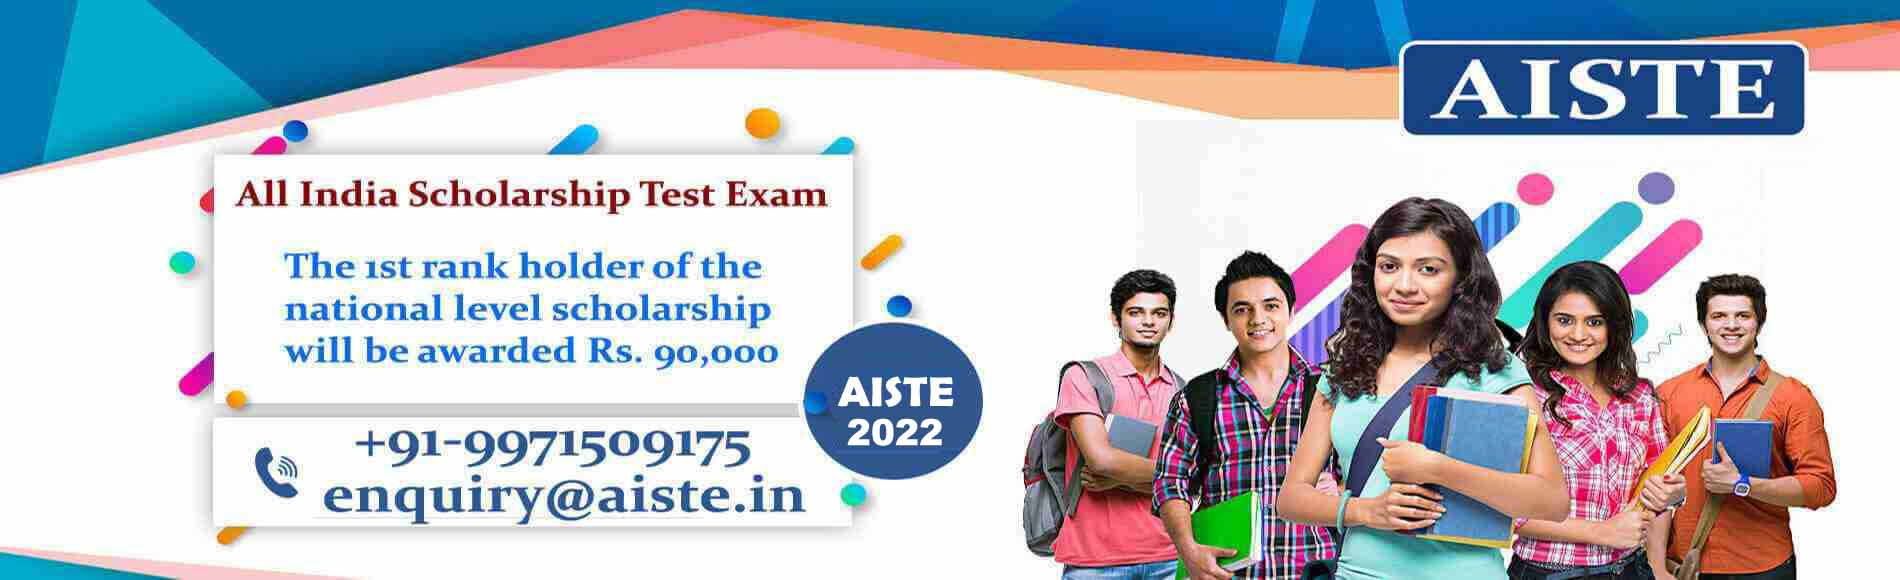 scholarship 2019 - The 1st rank holder of the national level scholarship will be awarded Rs. 90,000